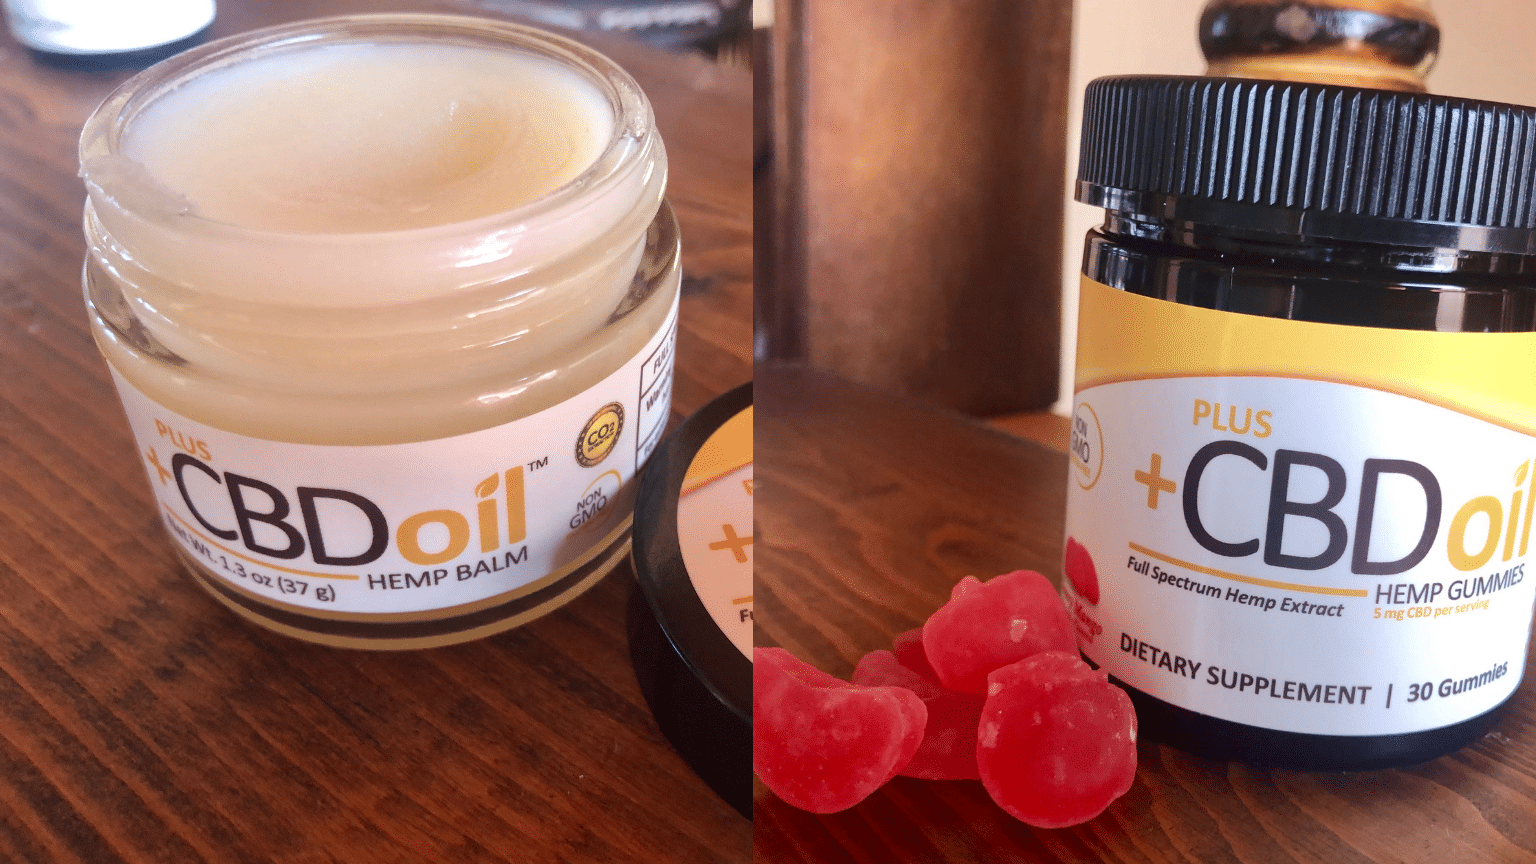 plus-cbd-oil-gummies-and-topical